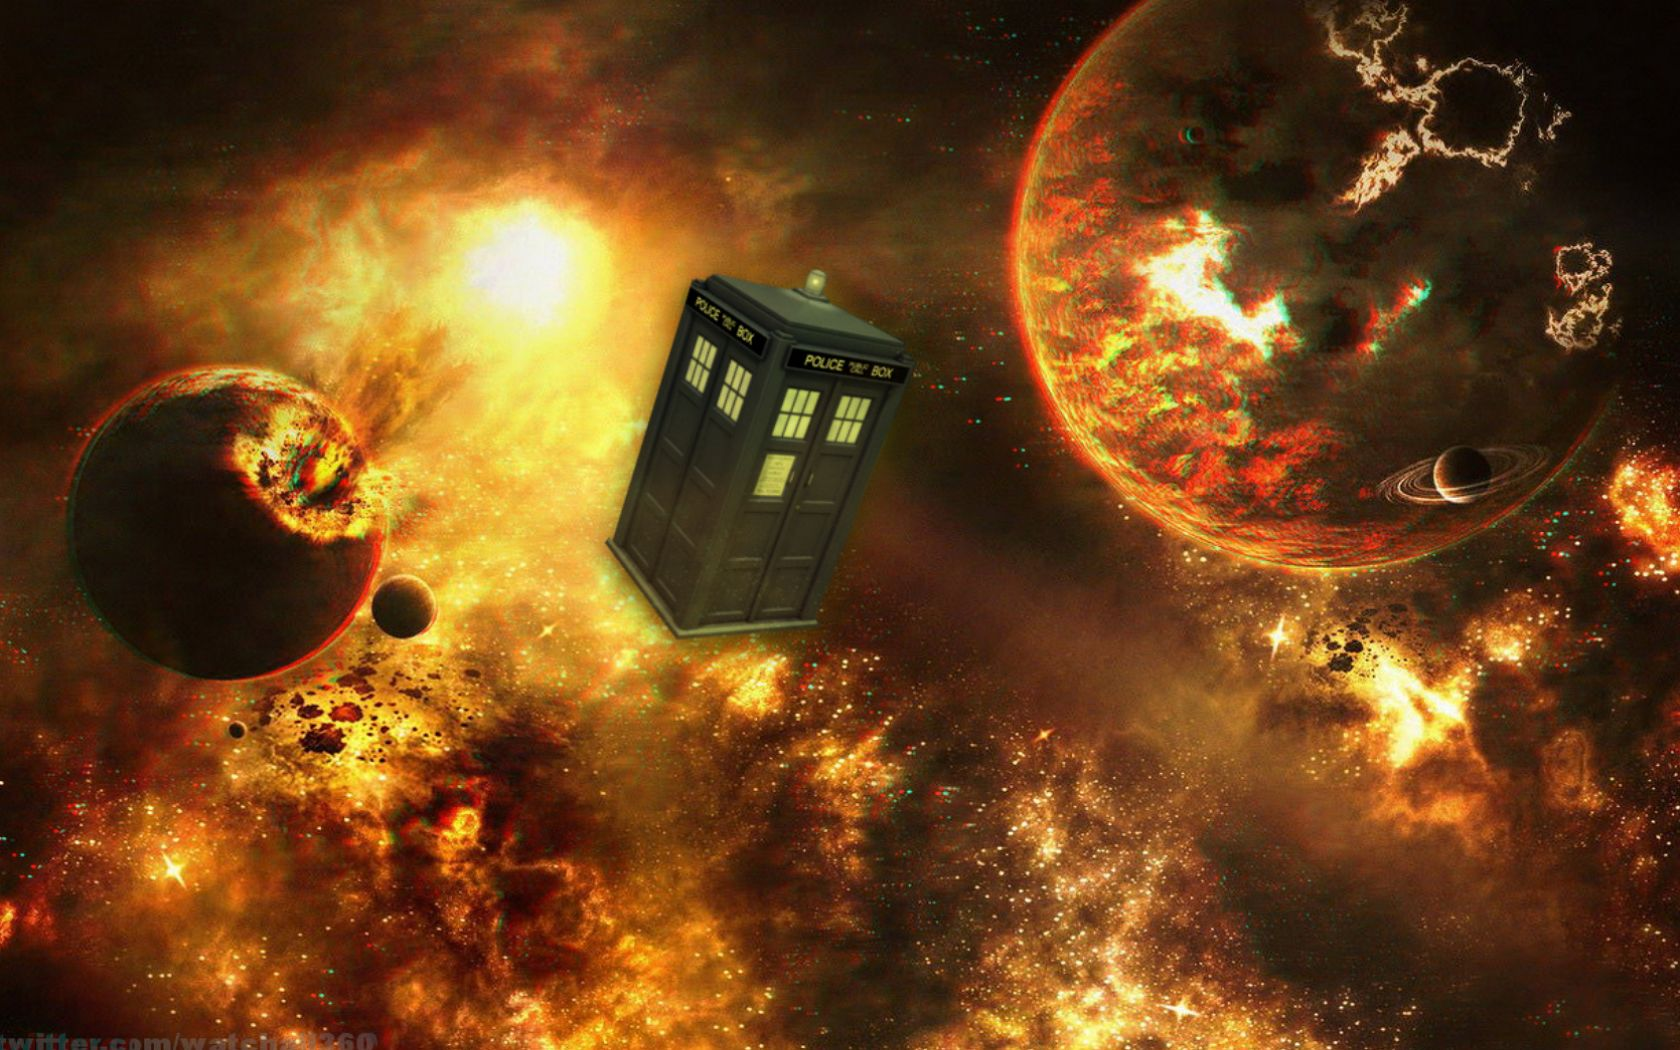 dr who computer backgrounds | wallpapersimages